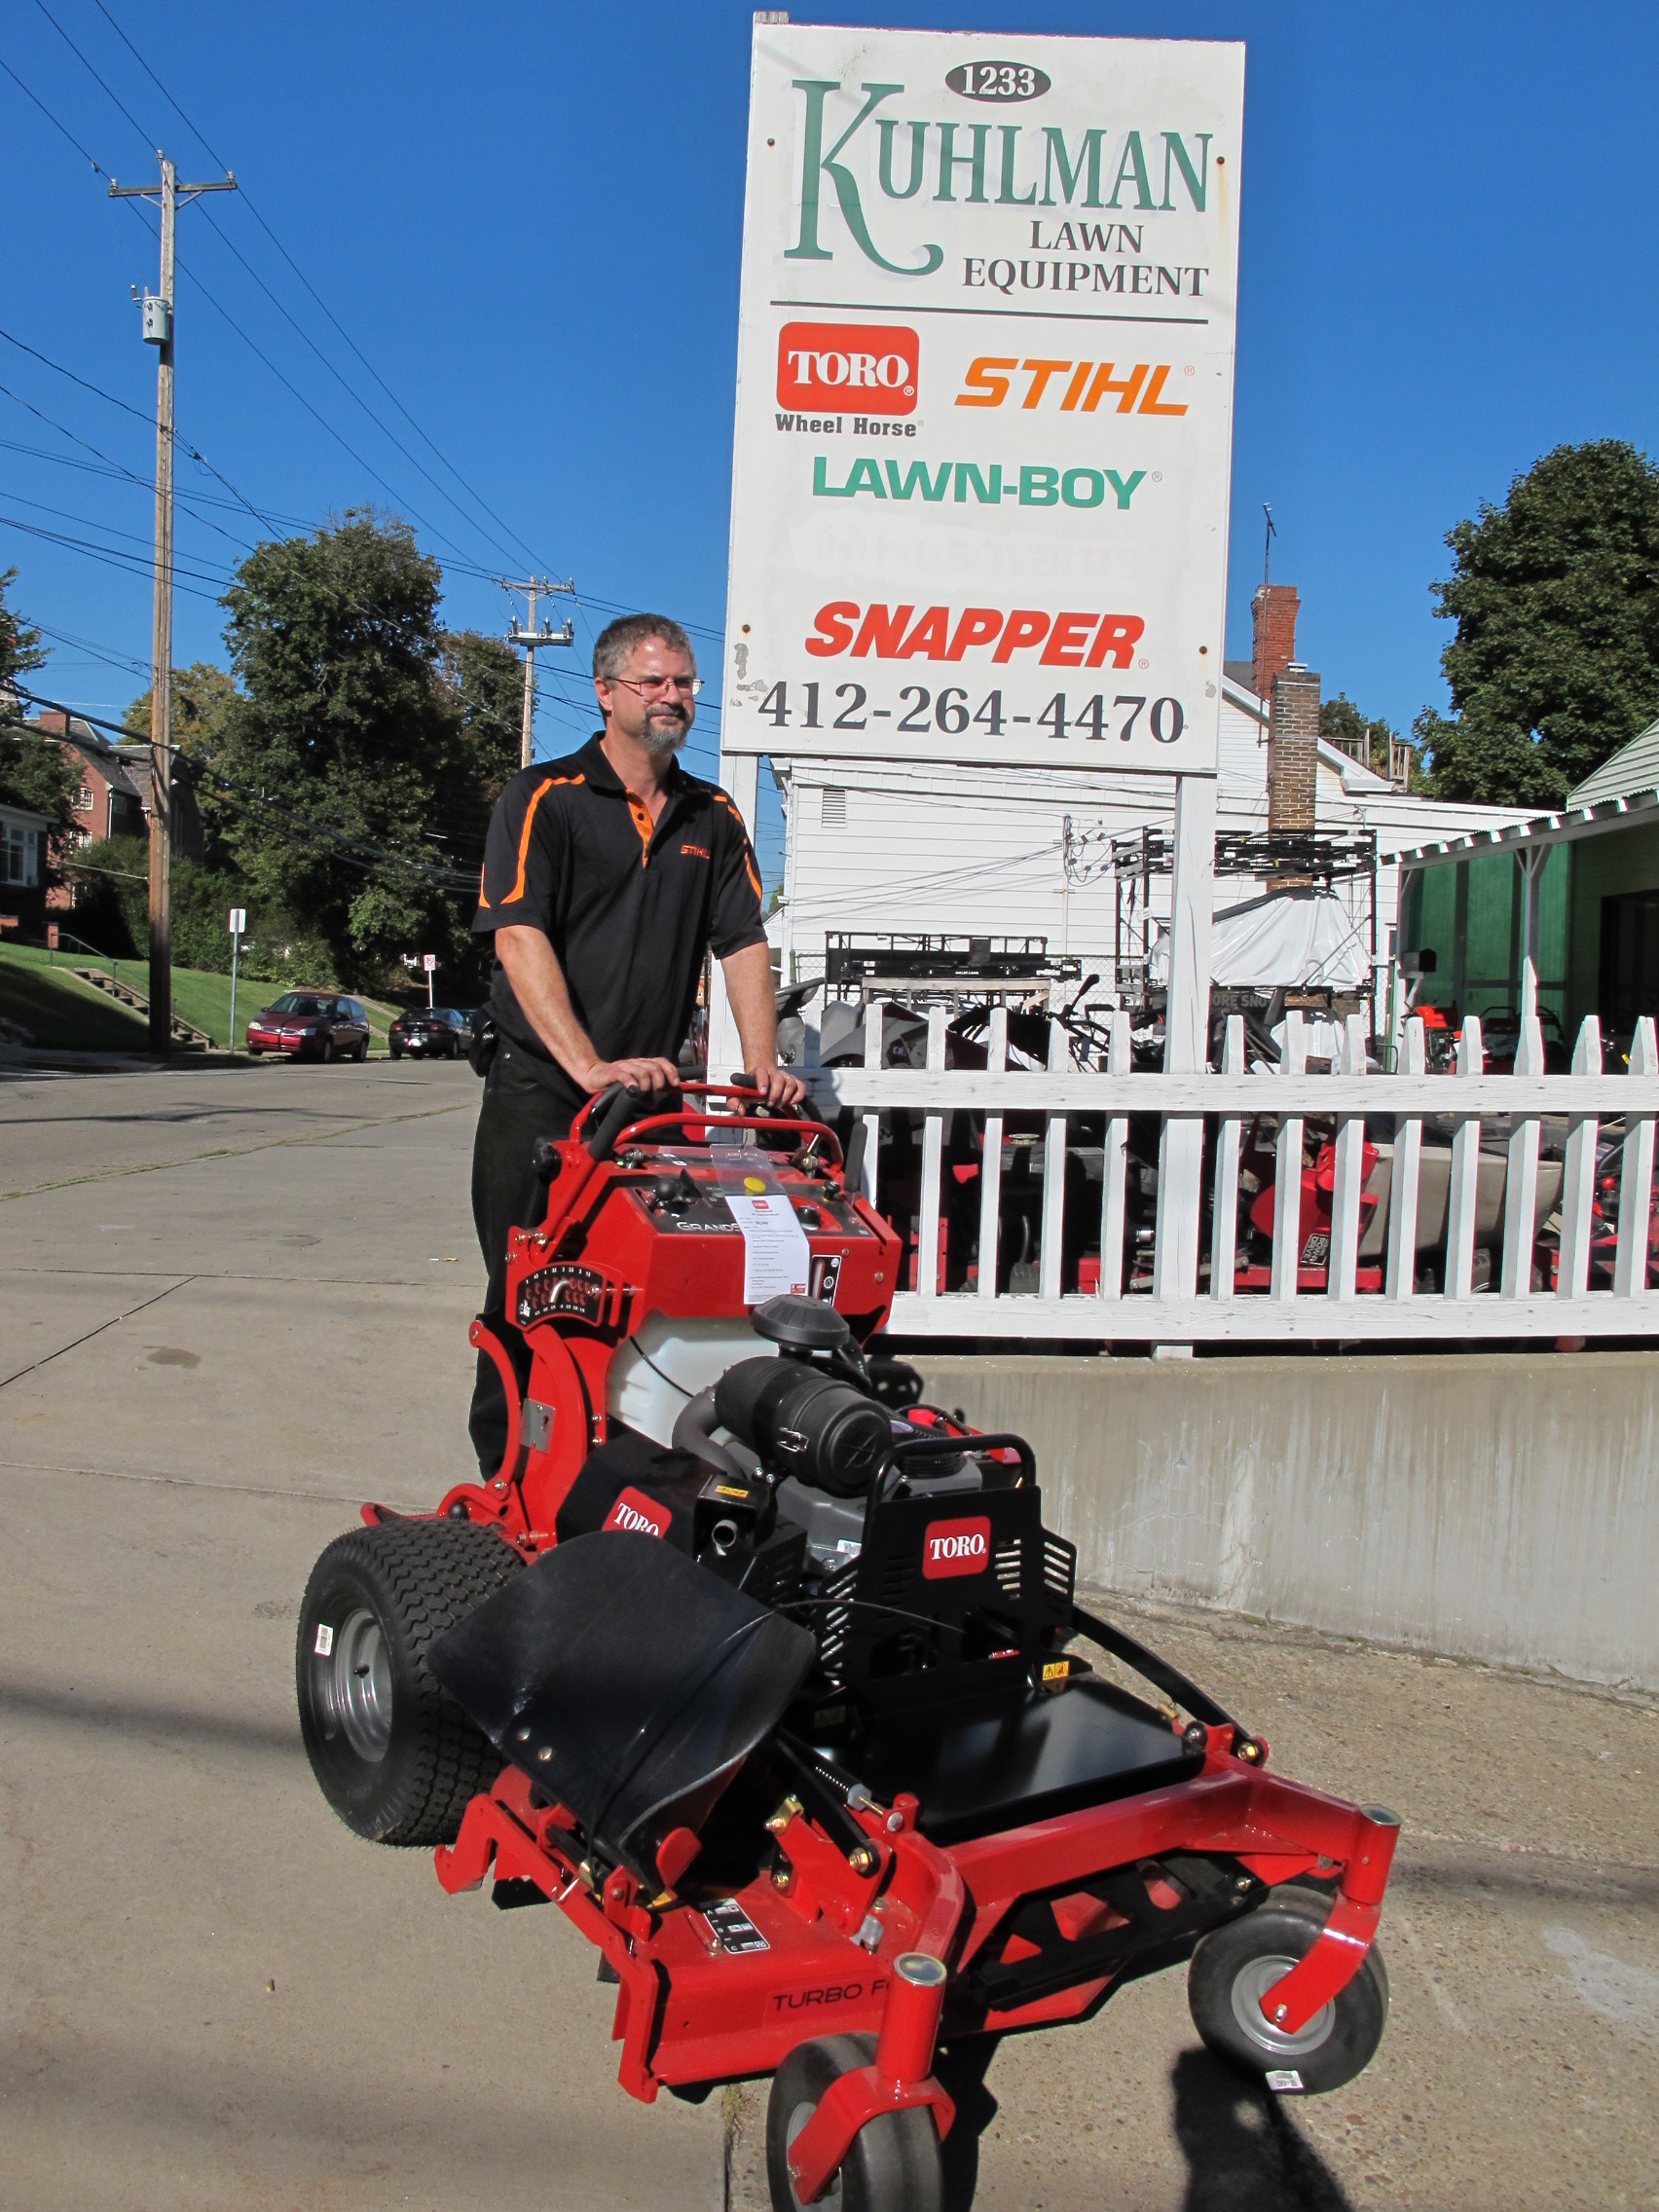 Kuhlman's Lawnmowers Sales & Service image 1